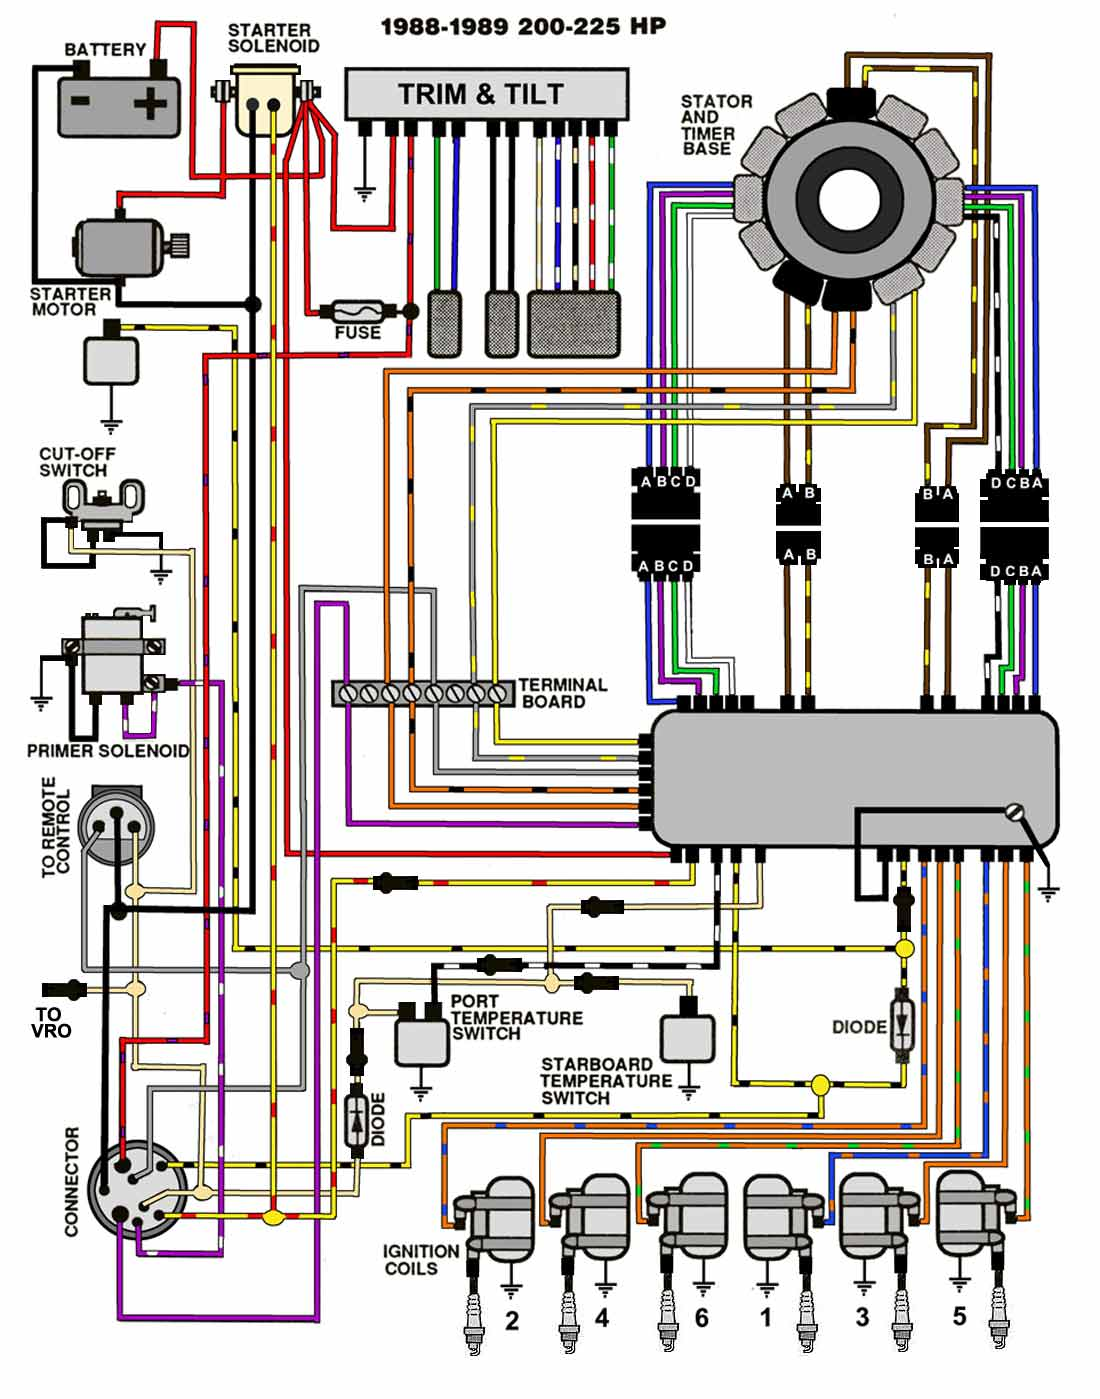 1988_89_200_225 mastertech marine evinrude johnson outboard wiring diagrams wiring diagram for johnson outboard motor at mifinder.co